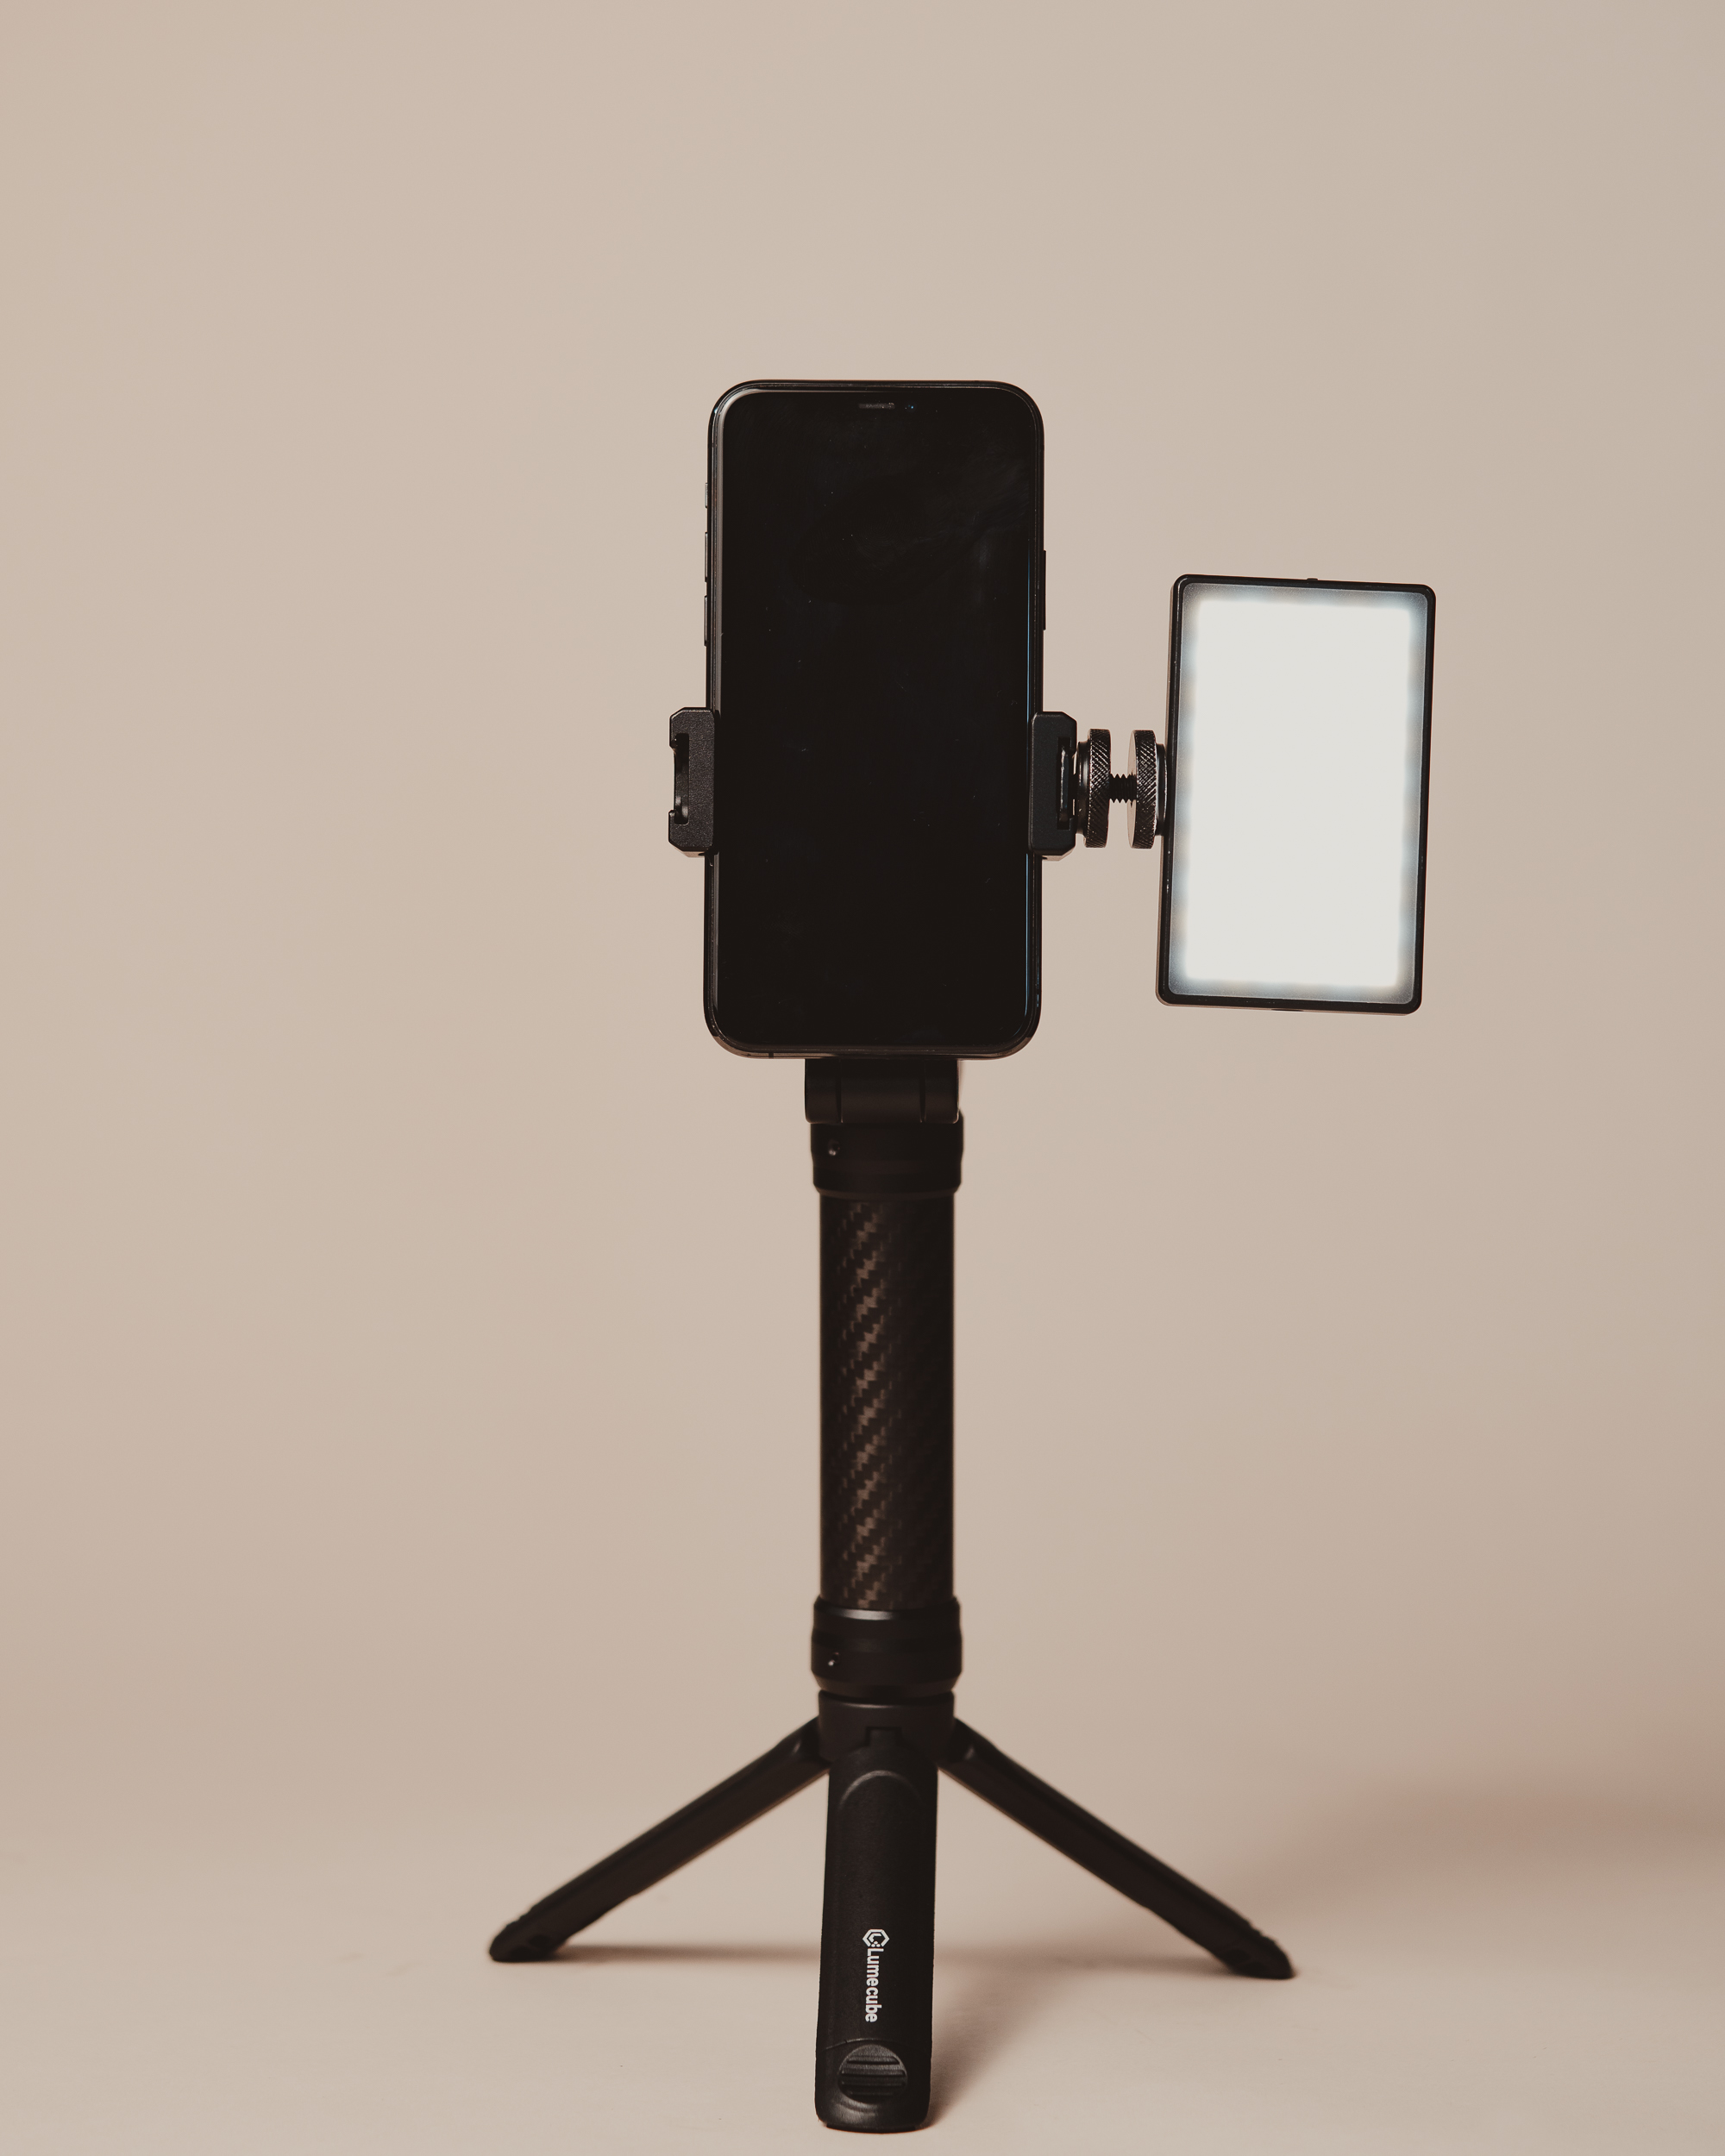 mobile creator kit with one light